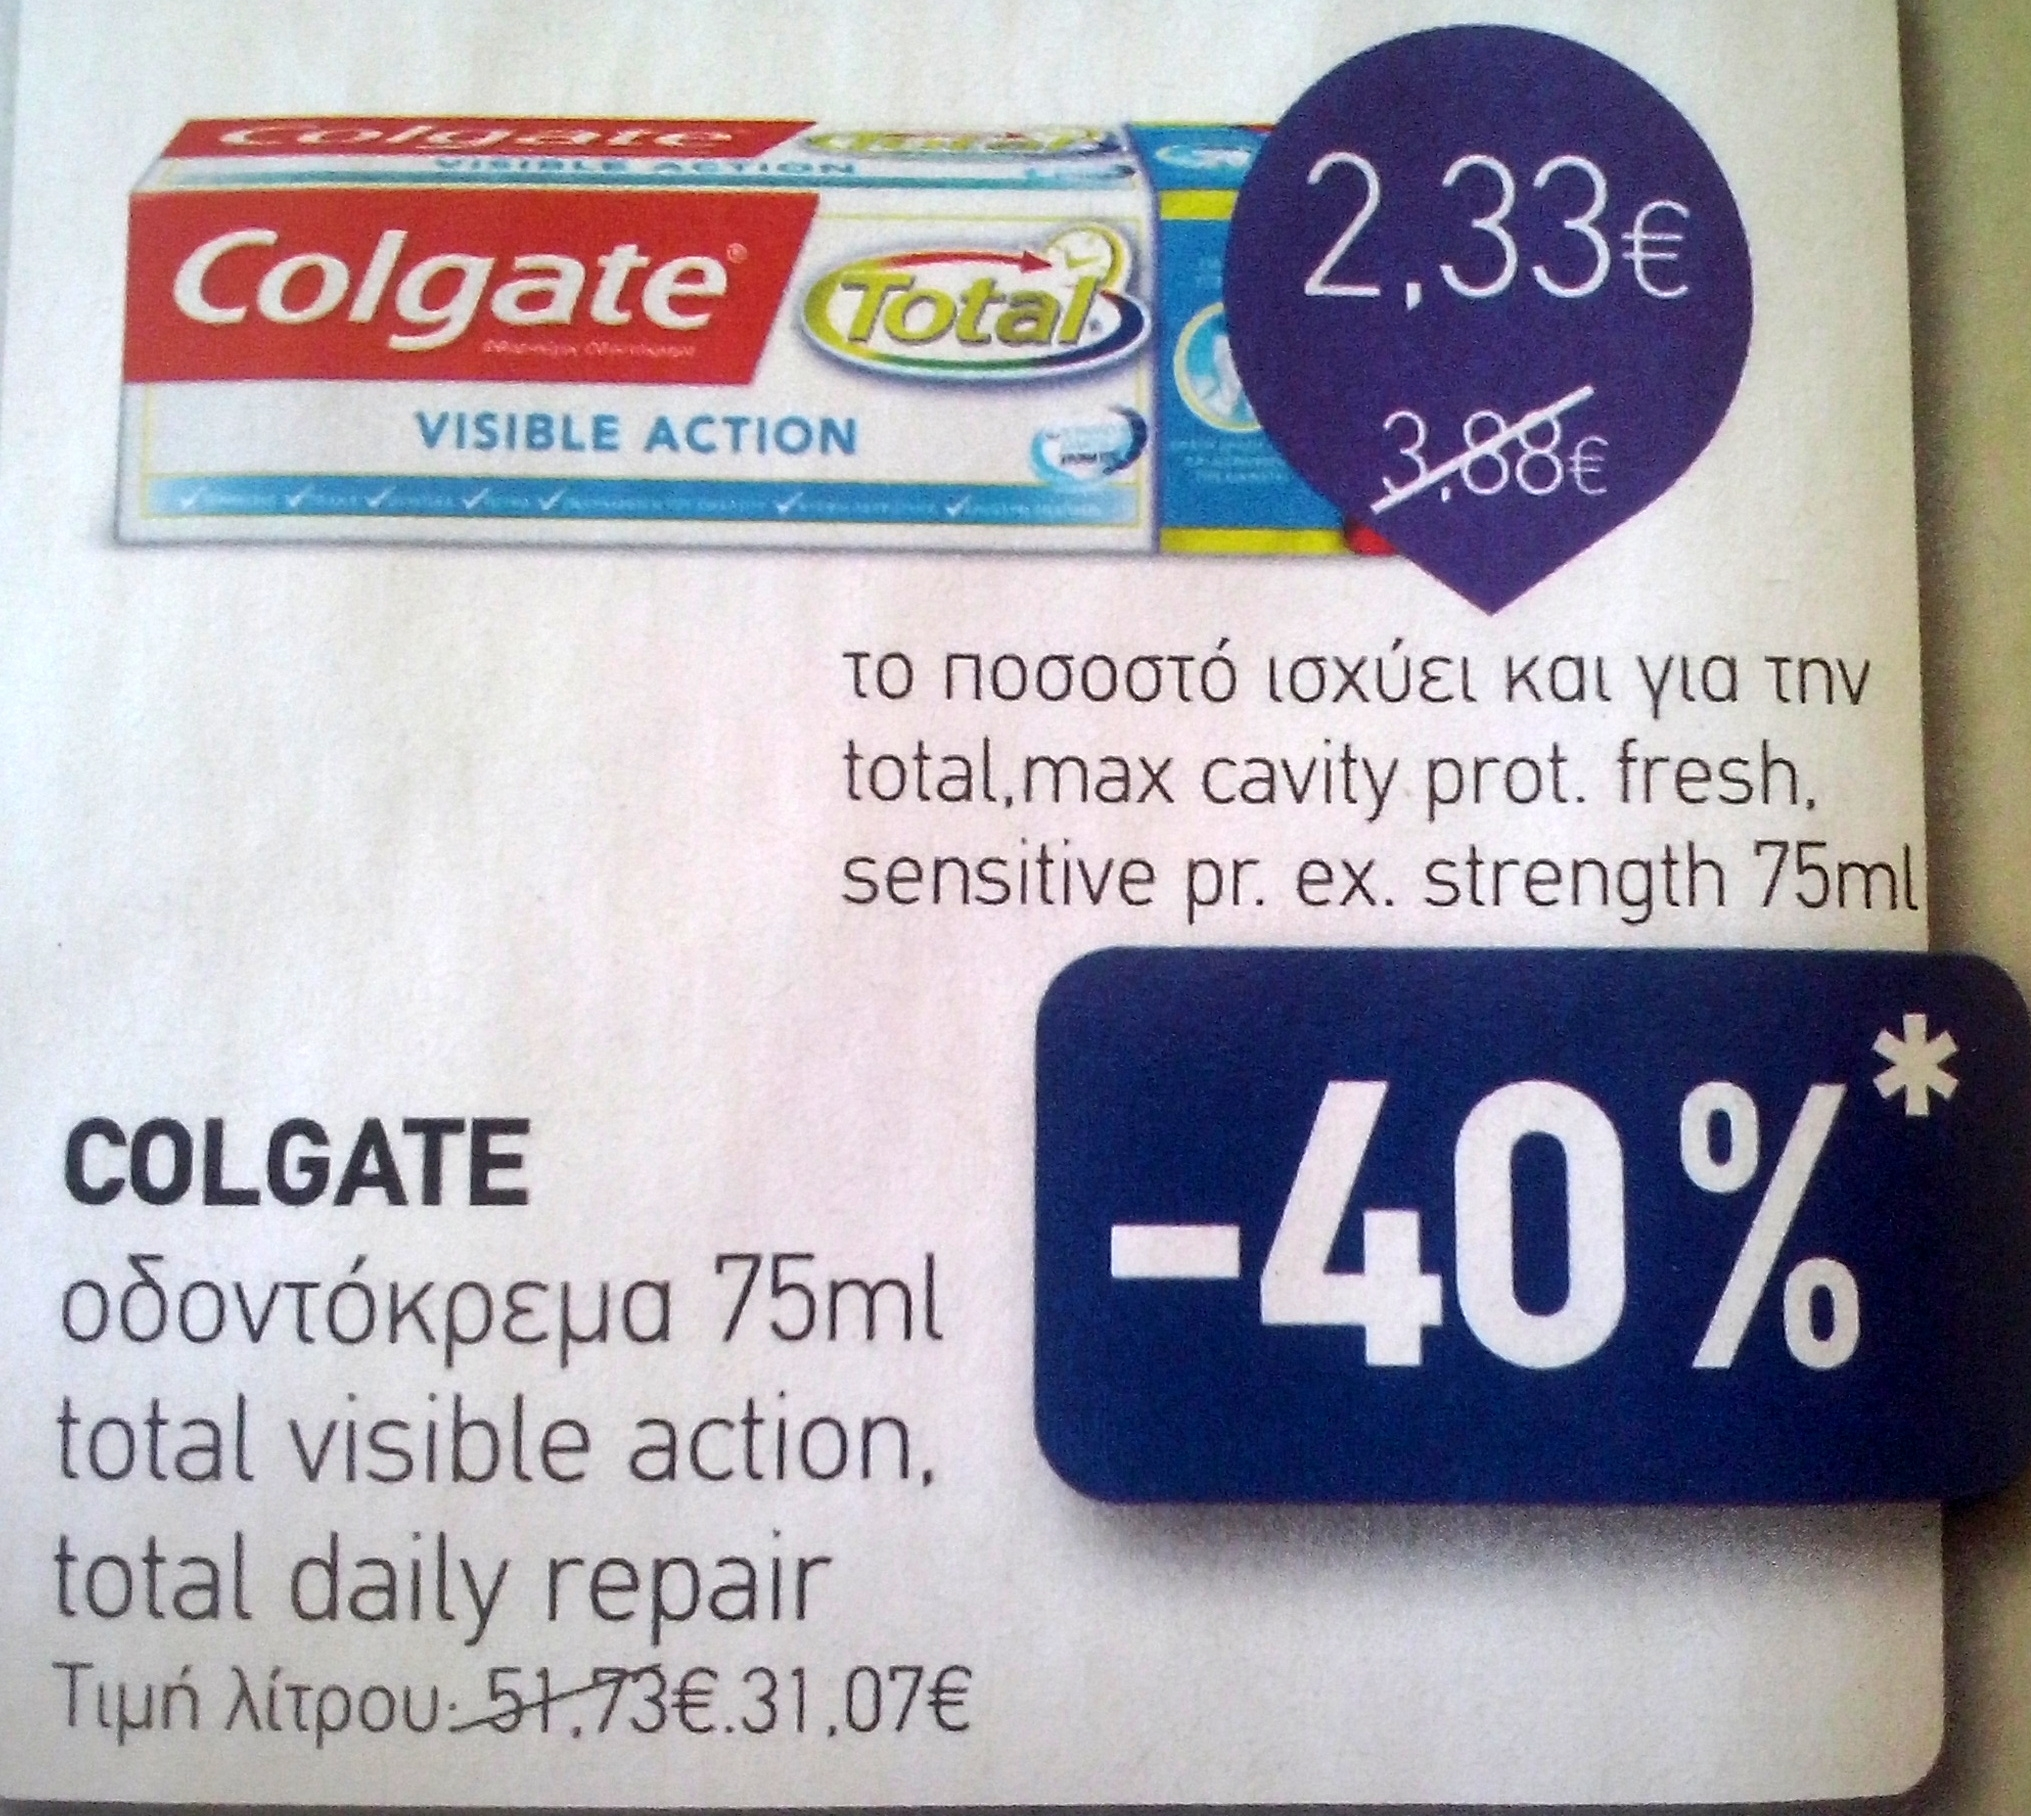 INKA offer Colgate